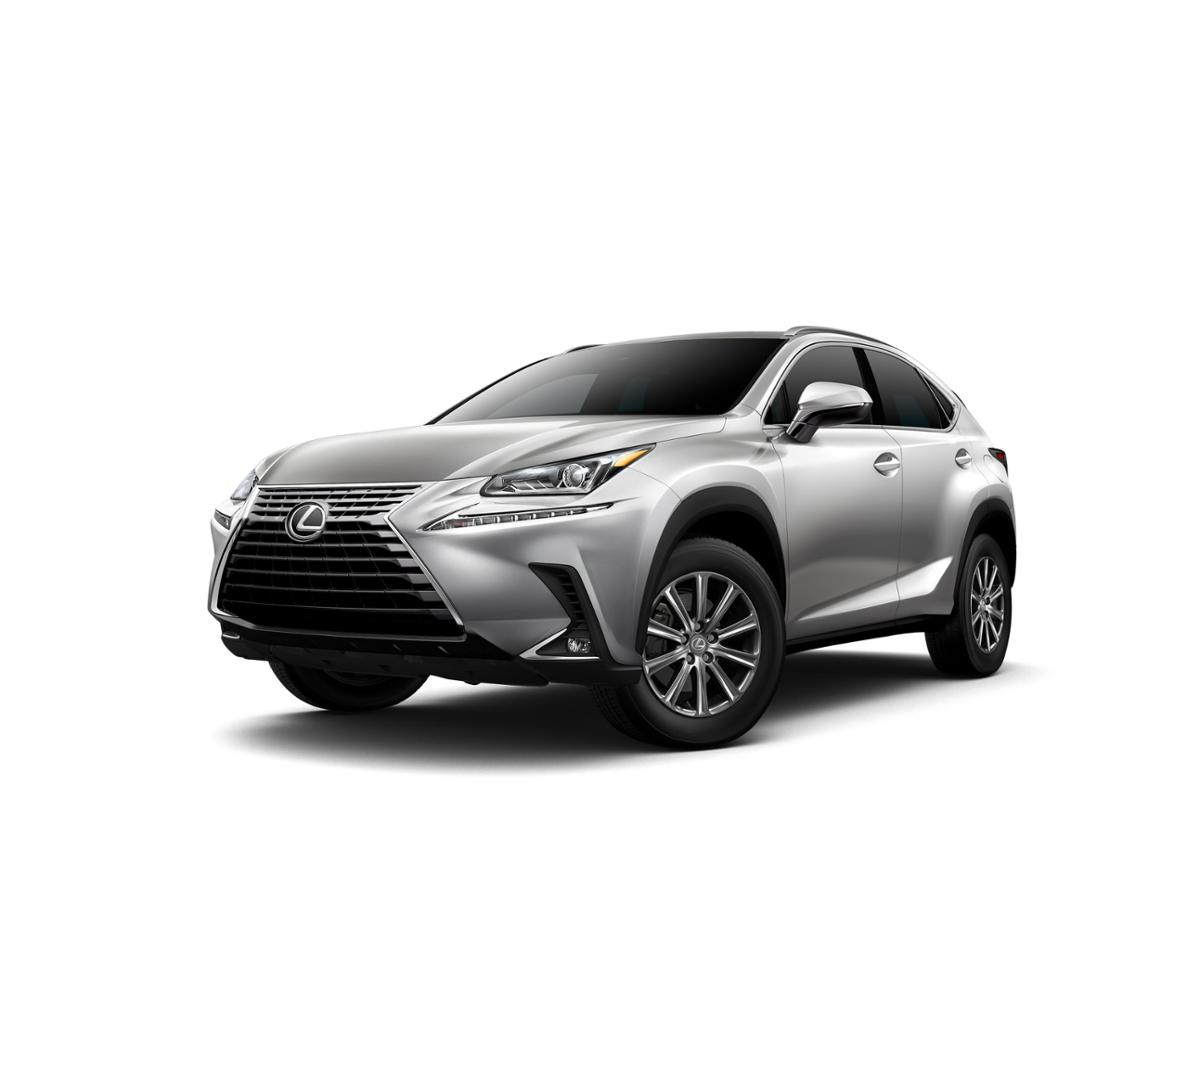 2018 Lexus NX 300 Vehicle Photo in Dallas, TX 75209